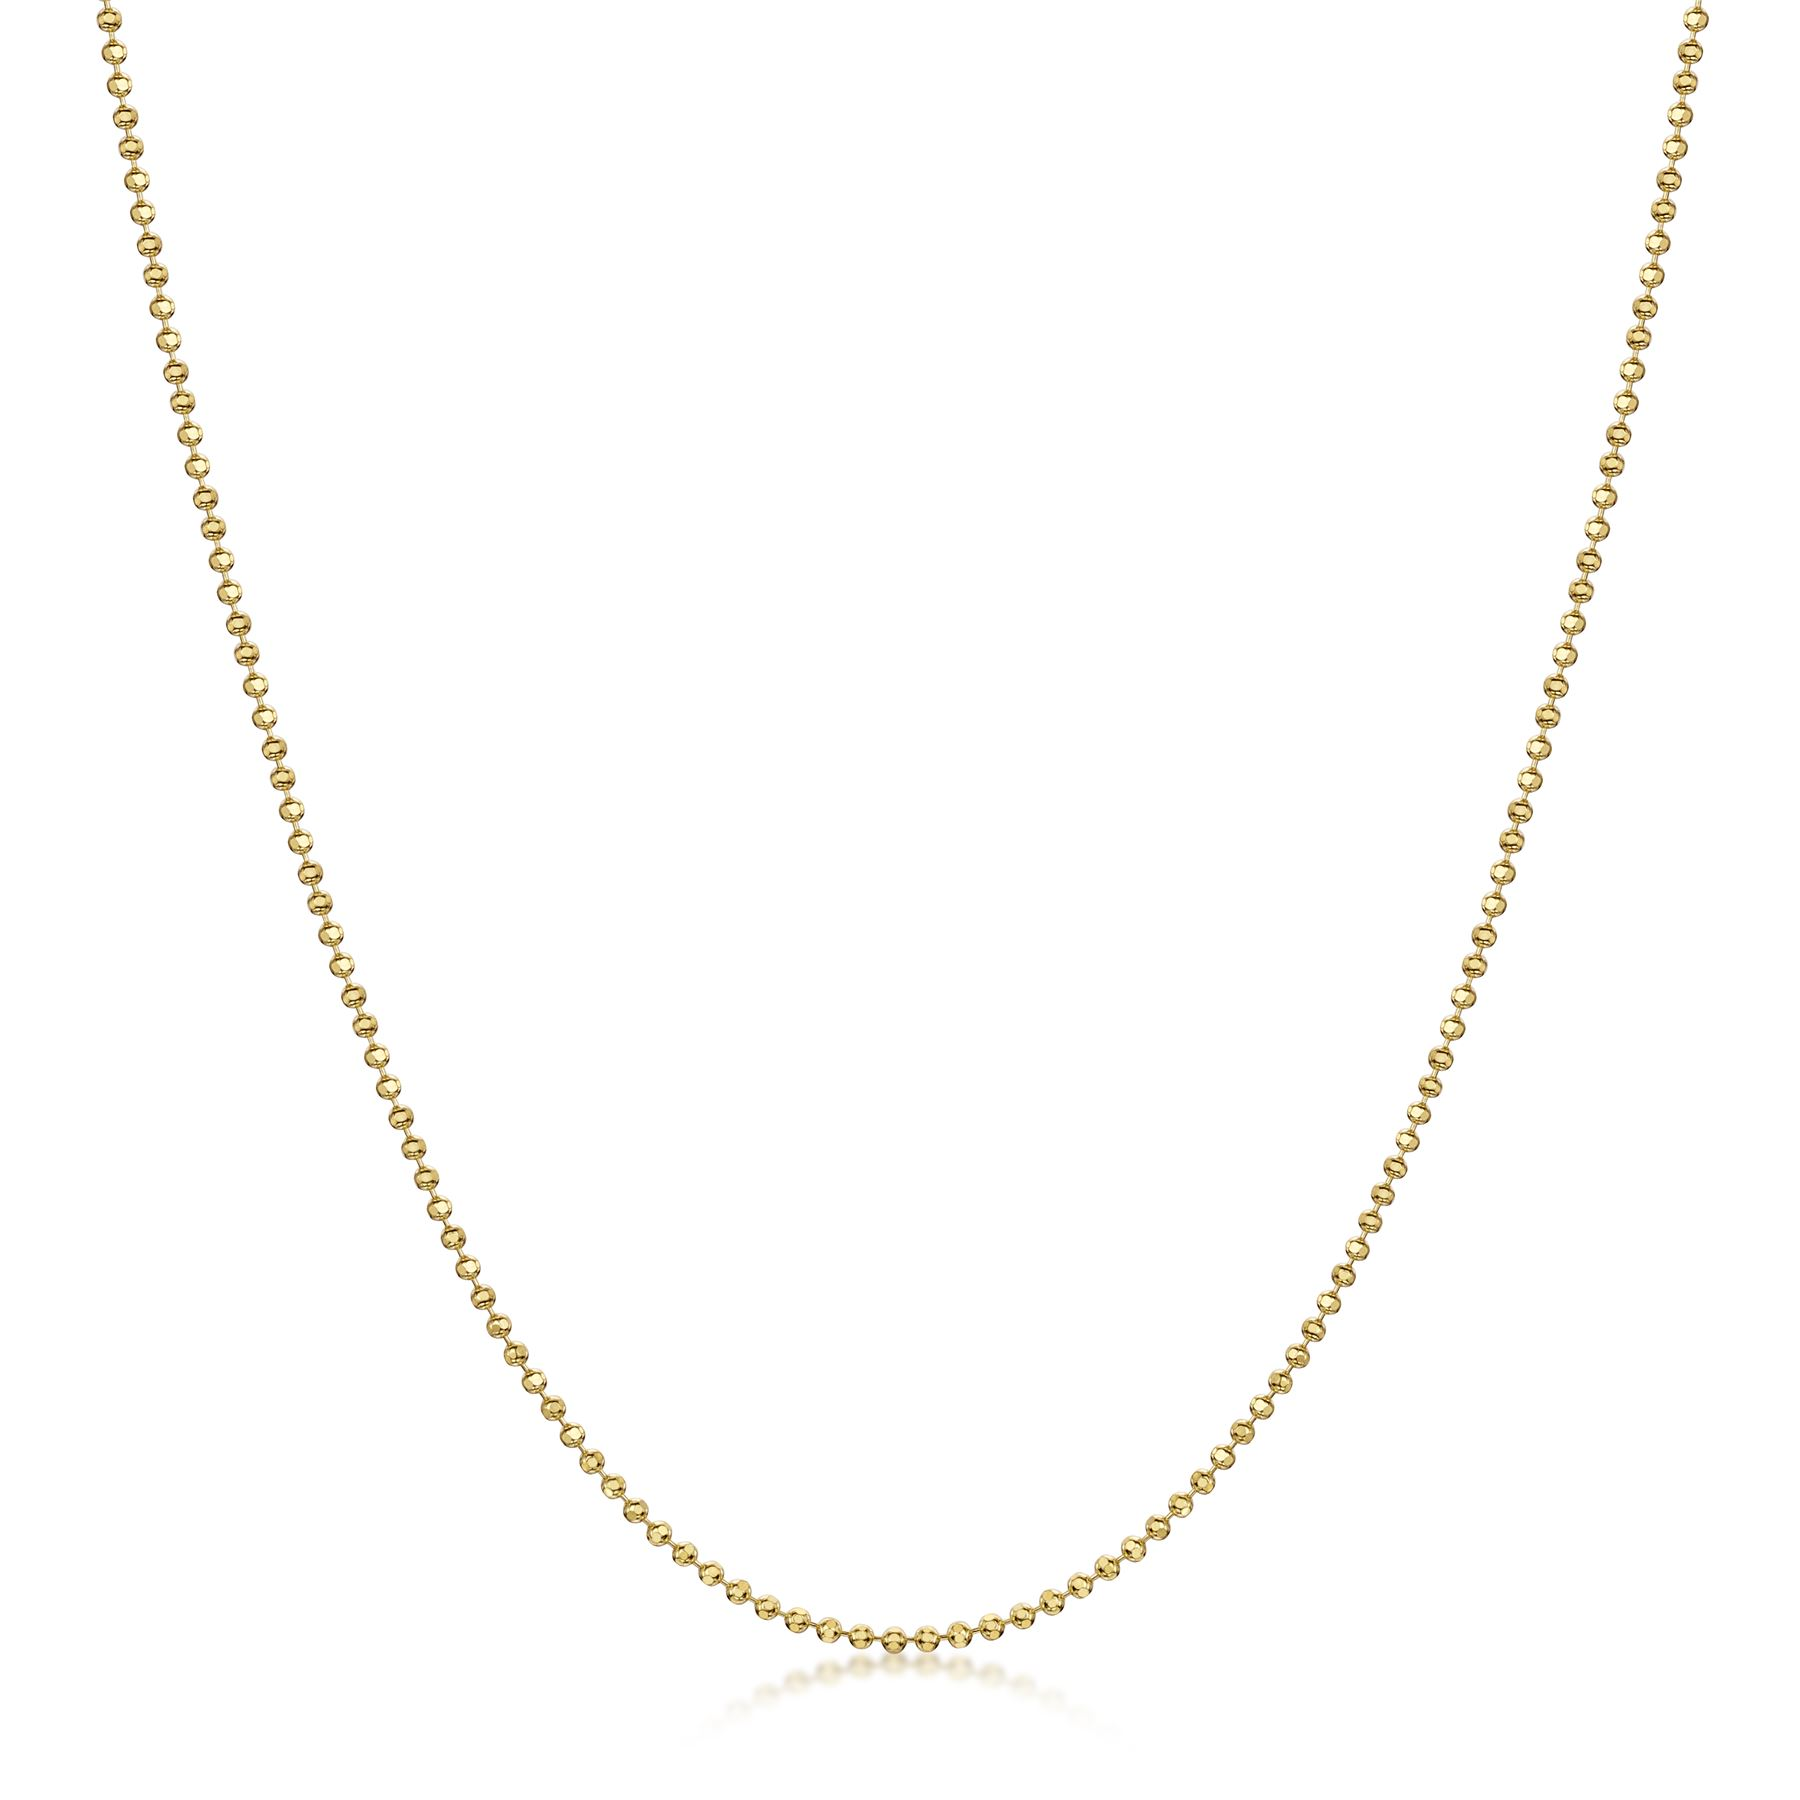 Amberta-Genuine-Gold-Plated-on-Real-925-Sterling-Silver-Necklace-Chain-Italy miniatura 7